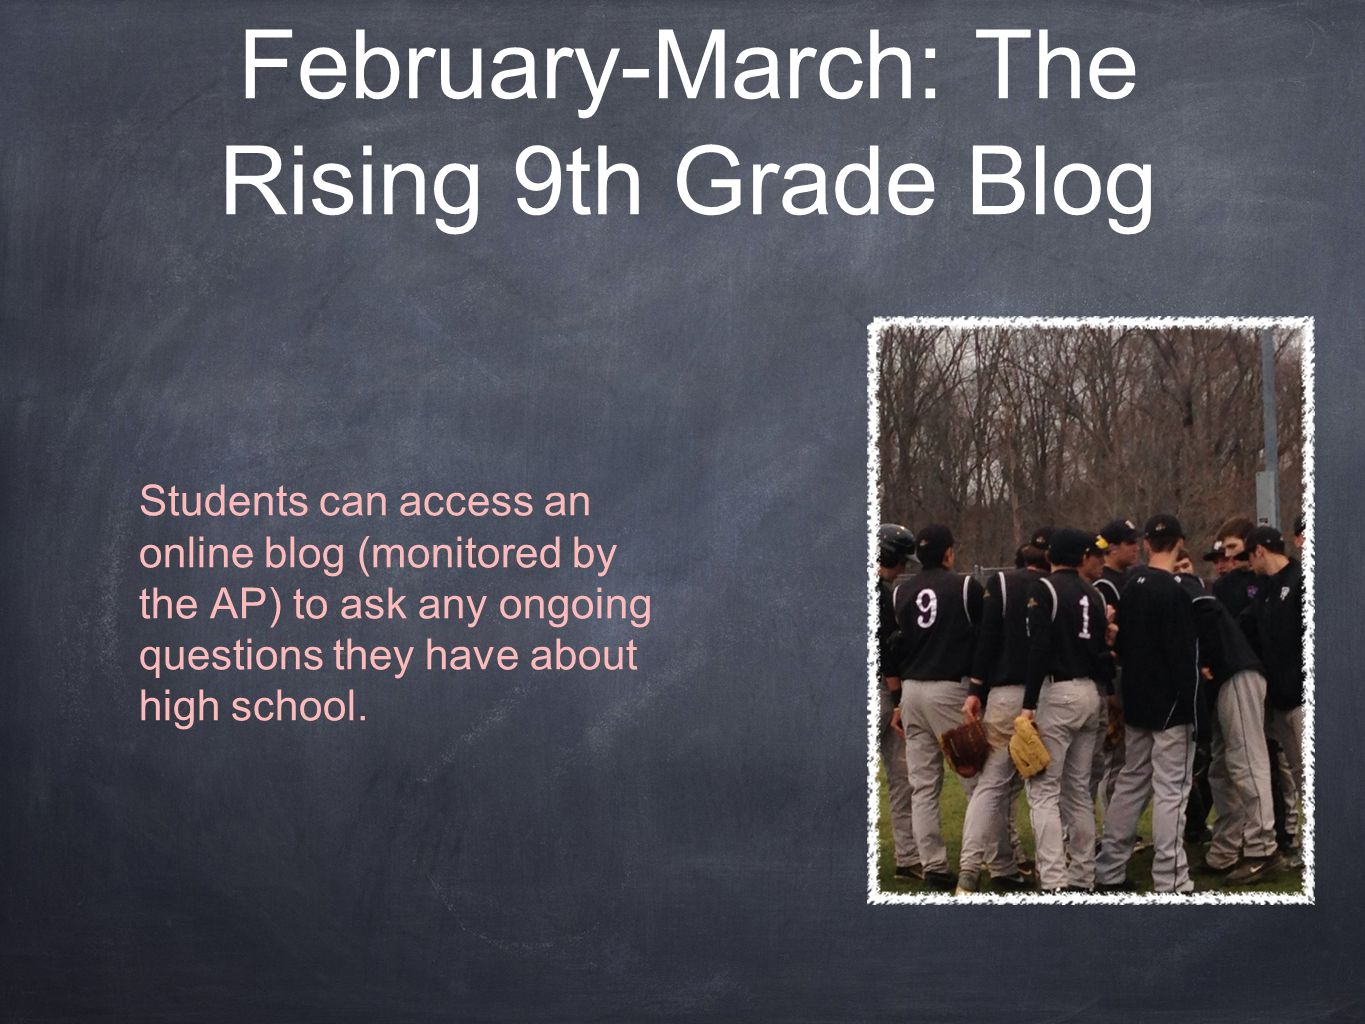 February-March: The Rising 9th Grade Blog Students can access an online blog (monitored by the AP) to ask any ongoing questions they have about high school.